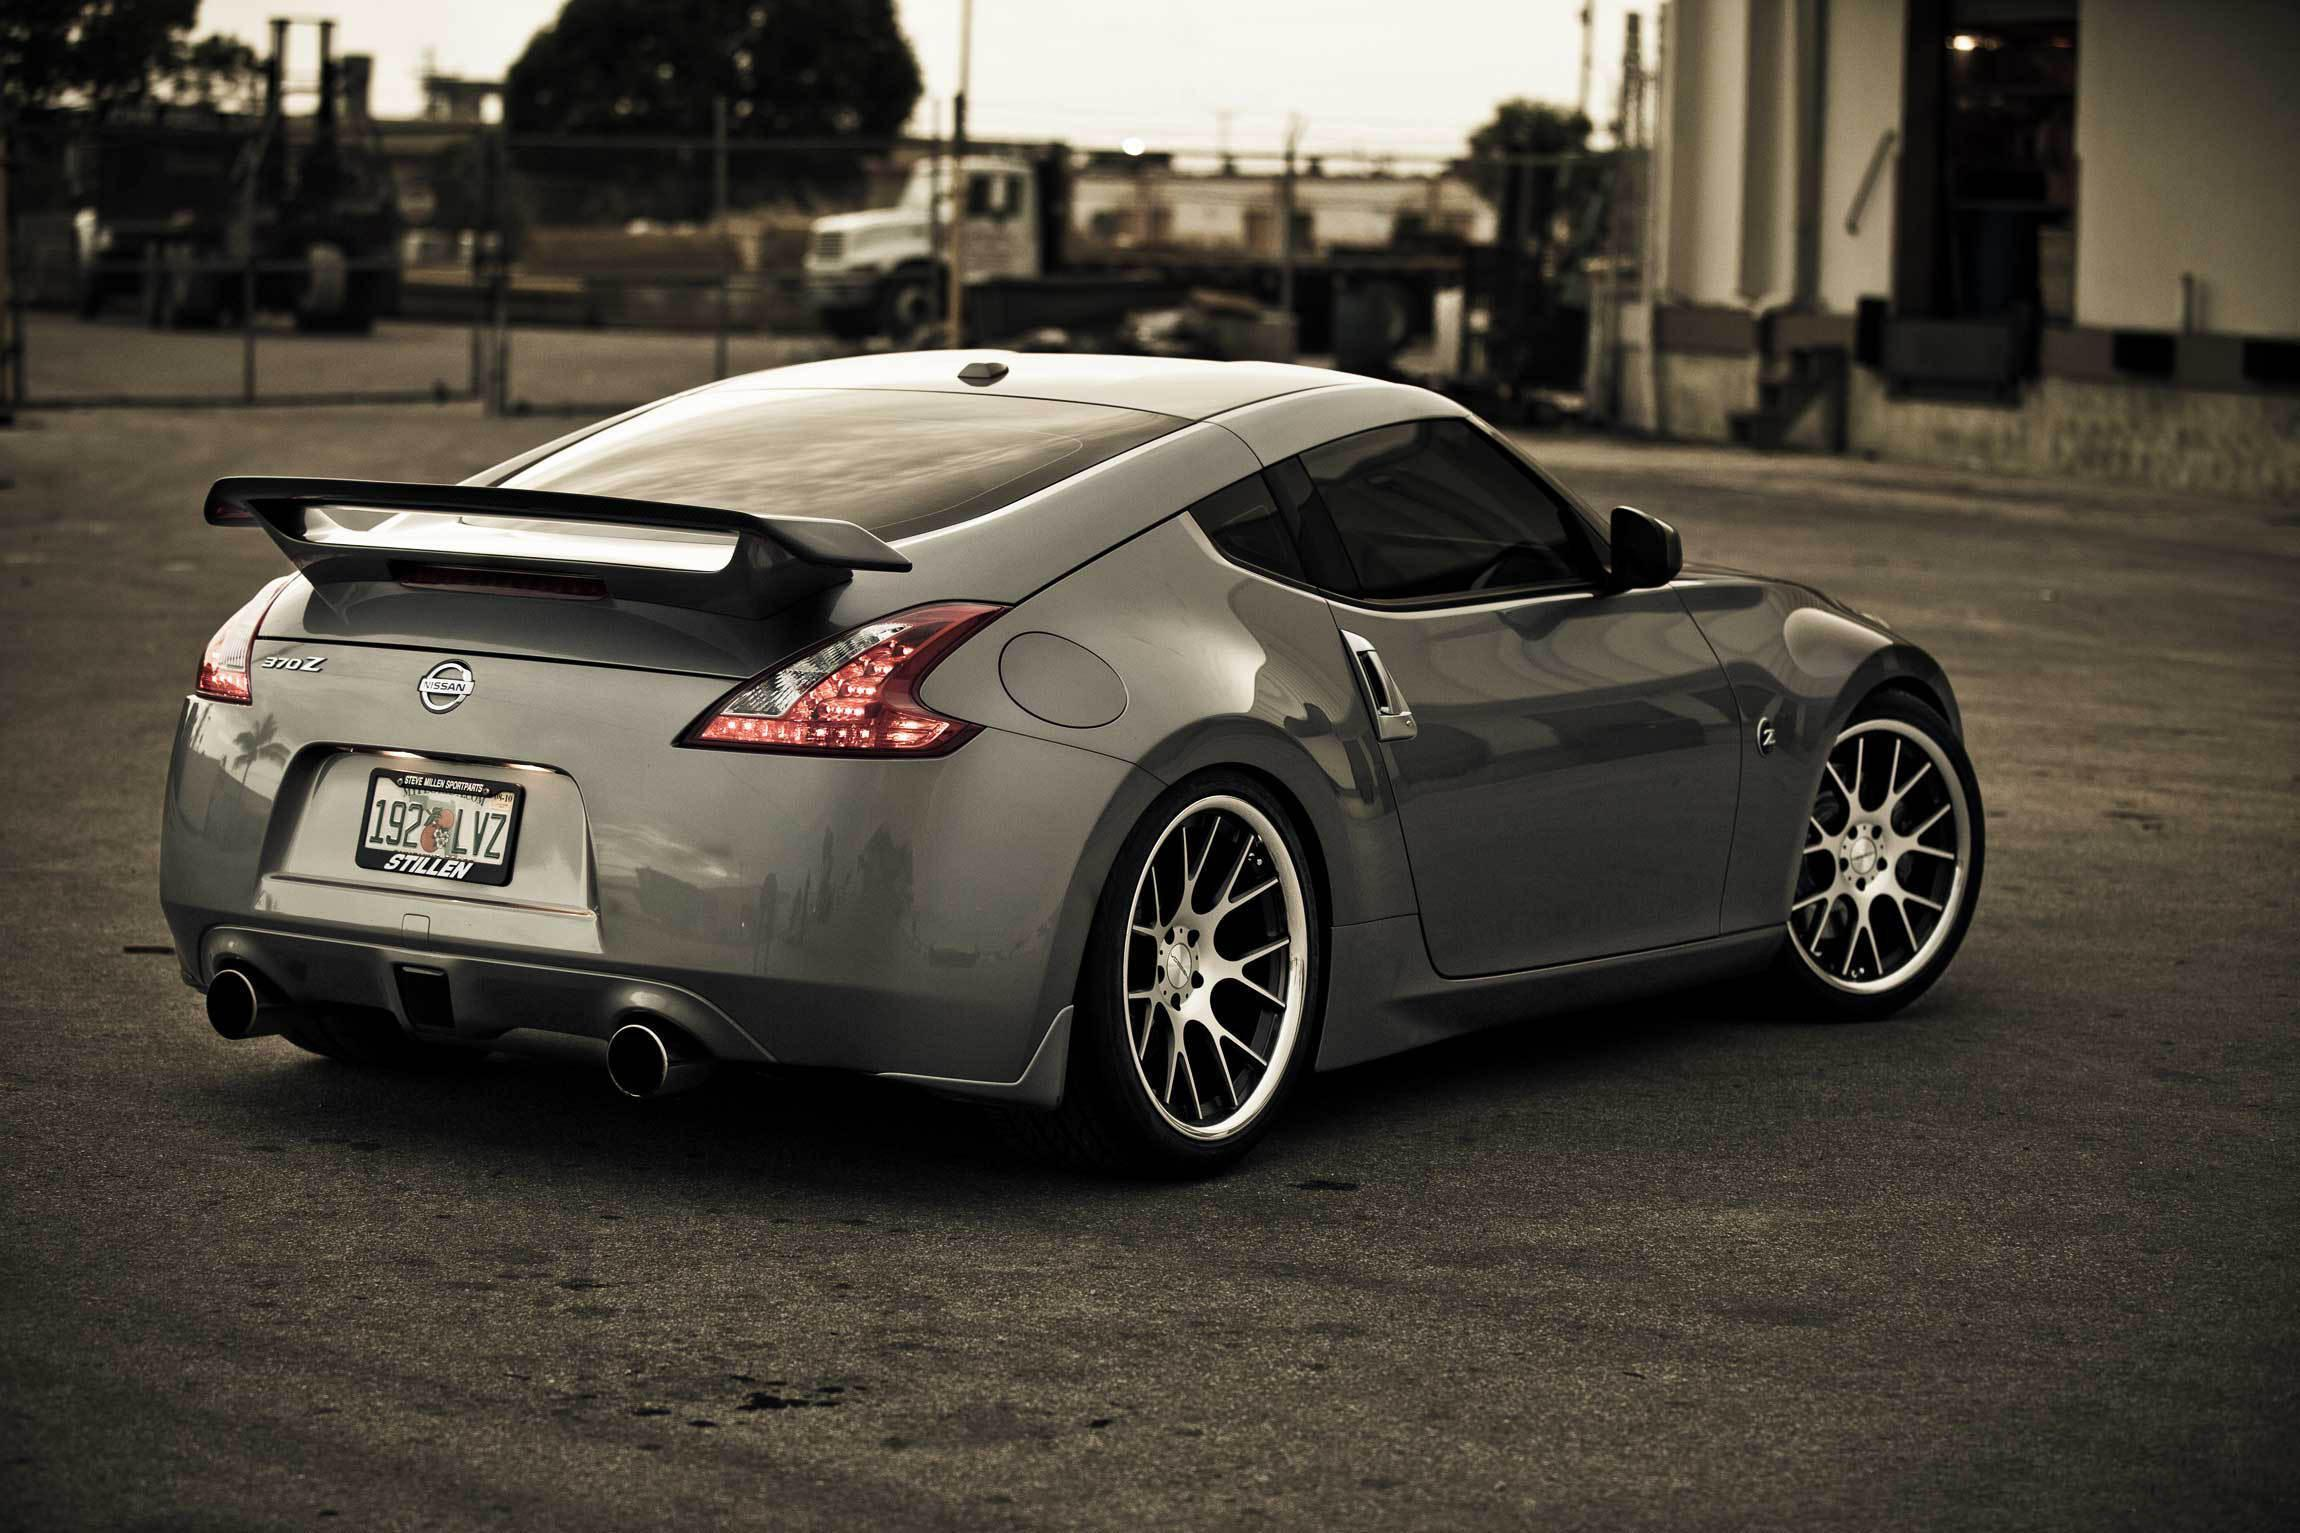 Nissan 370z wallpapers wallpaper cave 55 nissan 370z wallpapers nissan 370z backgrounds vanachro Choice Image